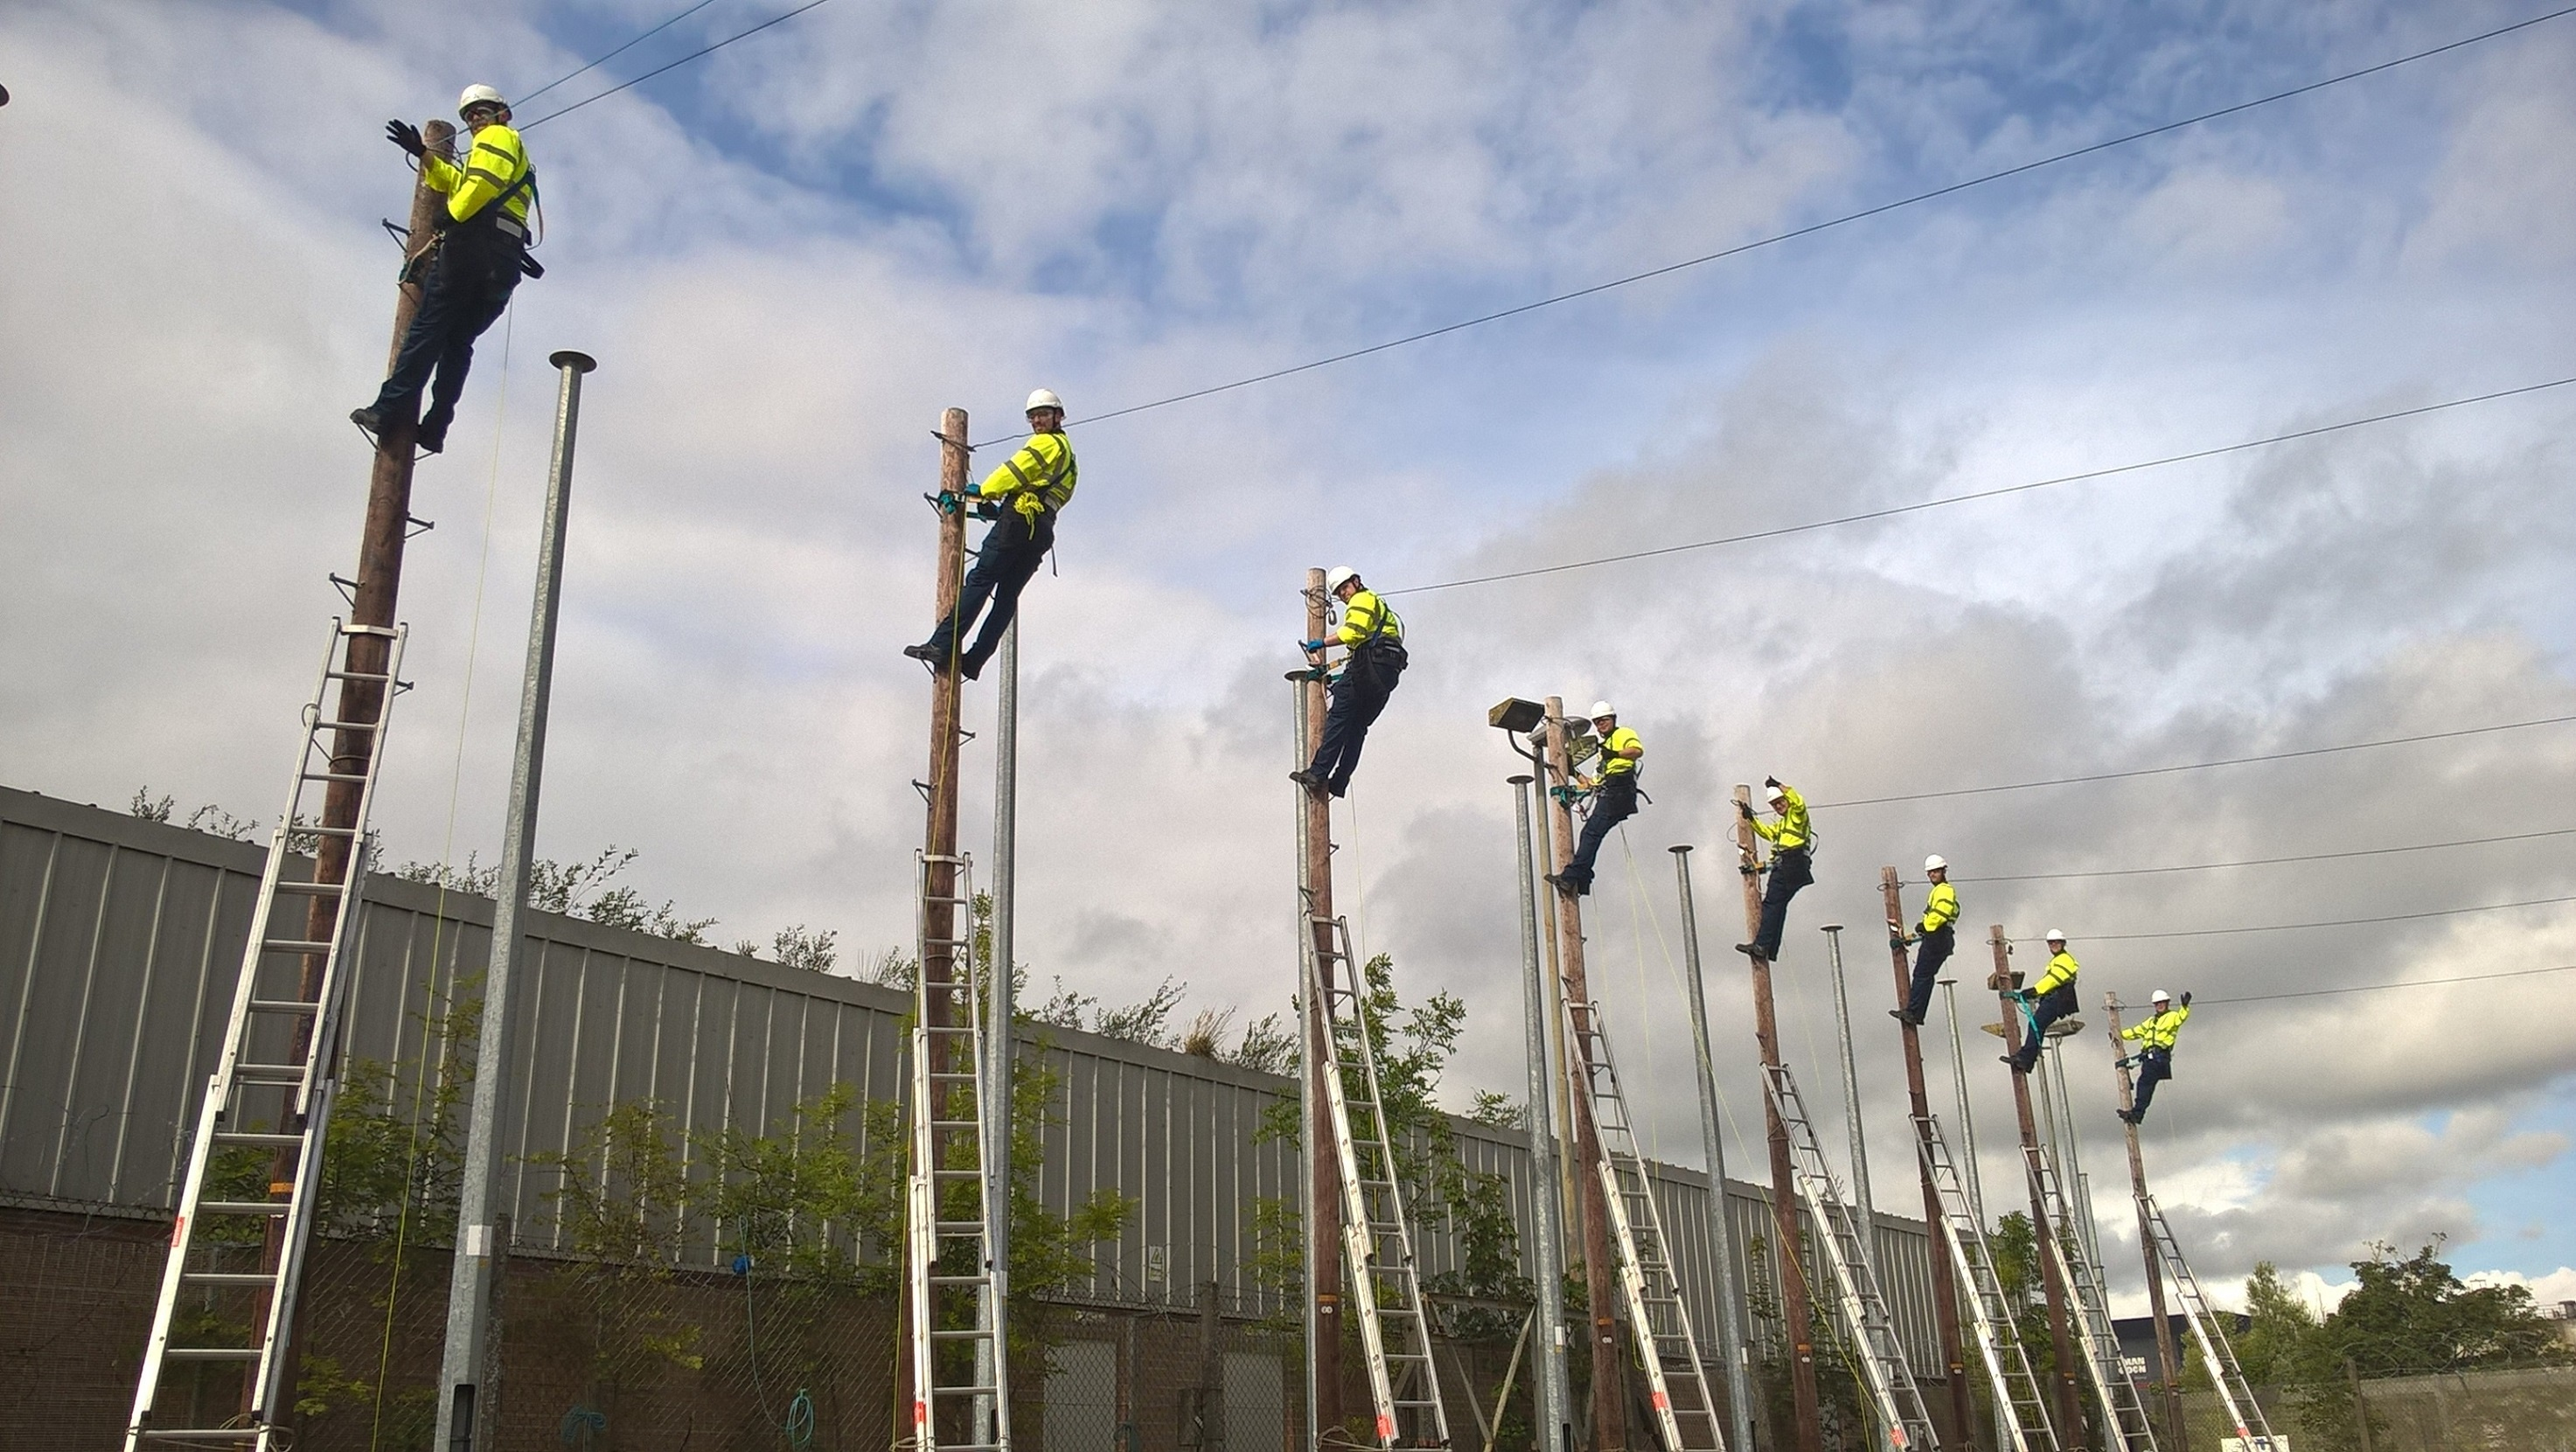 Openreach trainees poles